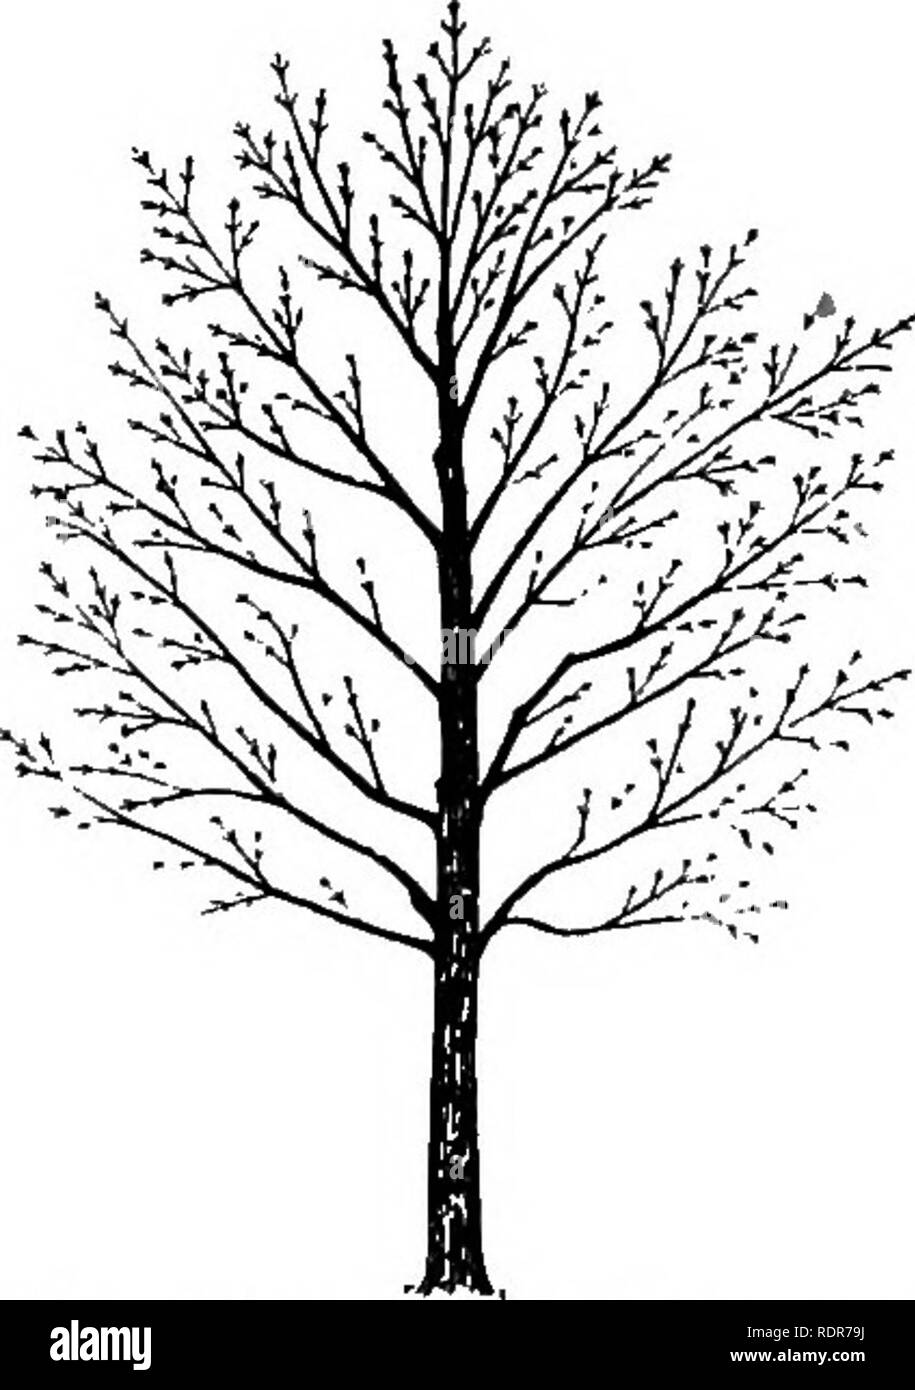 medium resolution of trees fig 8 diagram from a photo graph of a norway maple show ing the very dense crown common with this species the foliage produced makes a